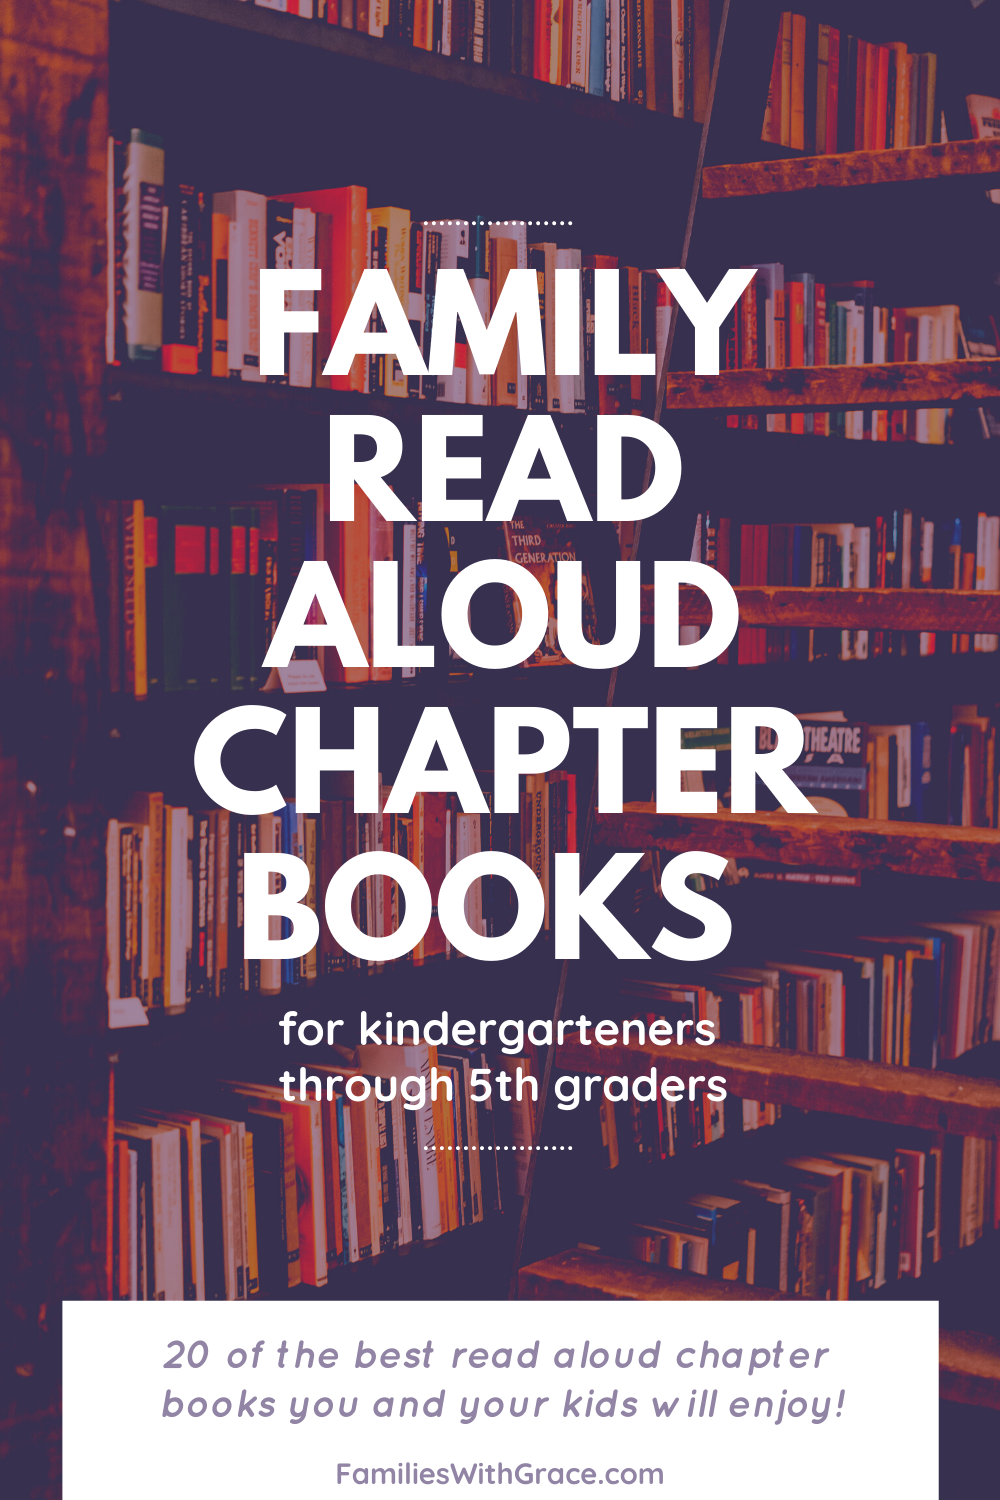 Family read aloud chapter books for kindergarteners through 5th graders